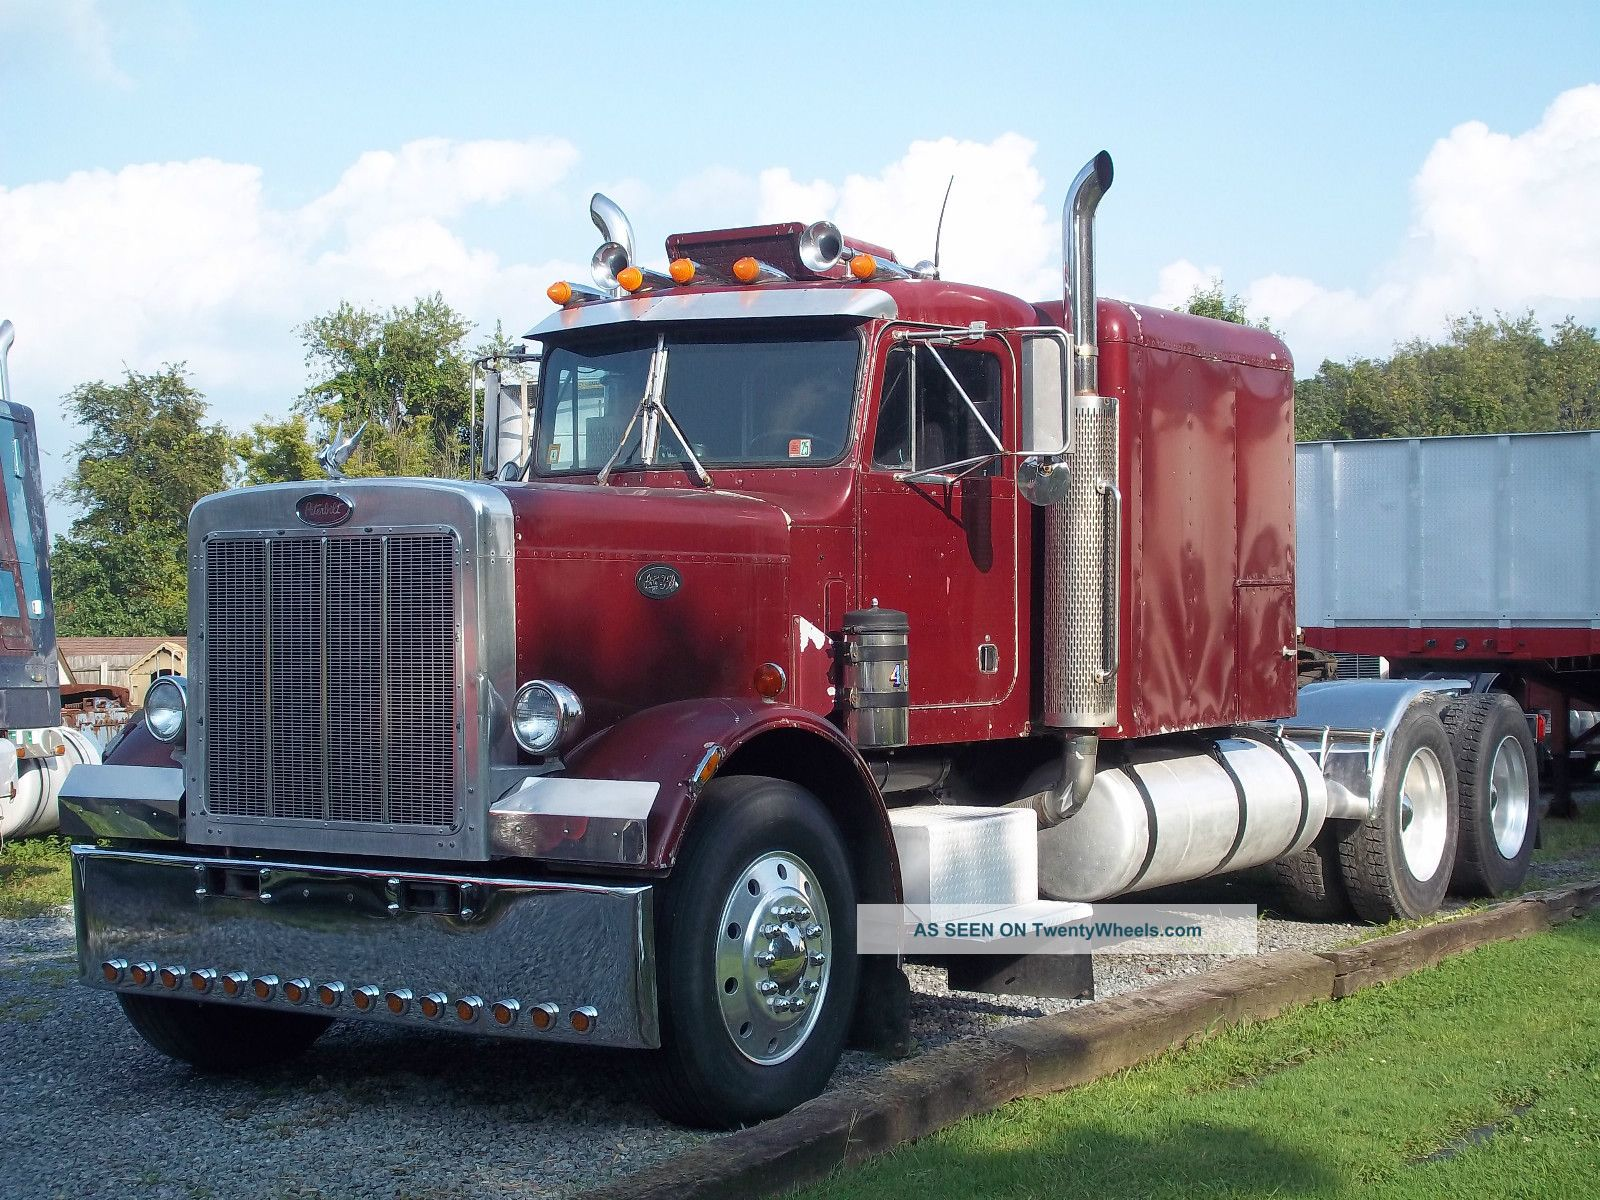 1430 together with 10425 1930 american lafrance metropolitan in addition 17564 Semi Trailer Dump Truck in addition The 2013 Mack Pinnacle Series further 7224 1998 hayhog hay squeeze. on semi truck dump trailers